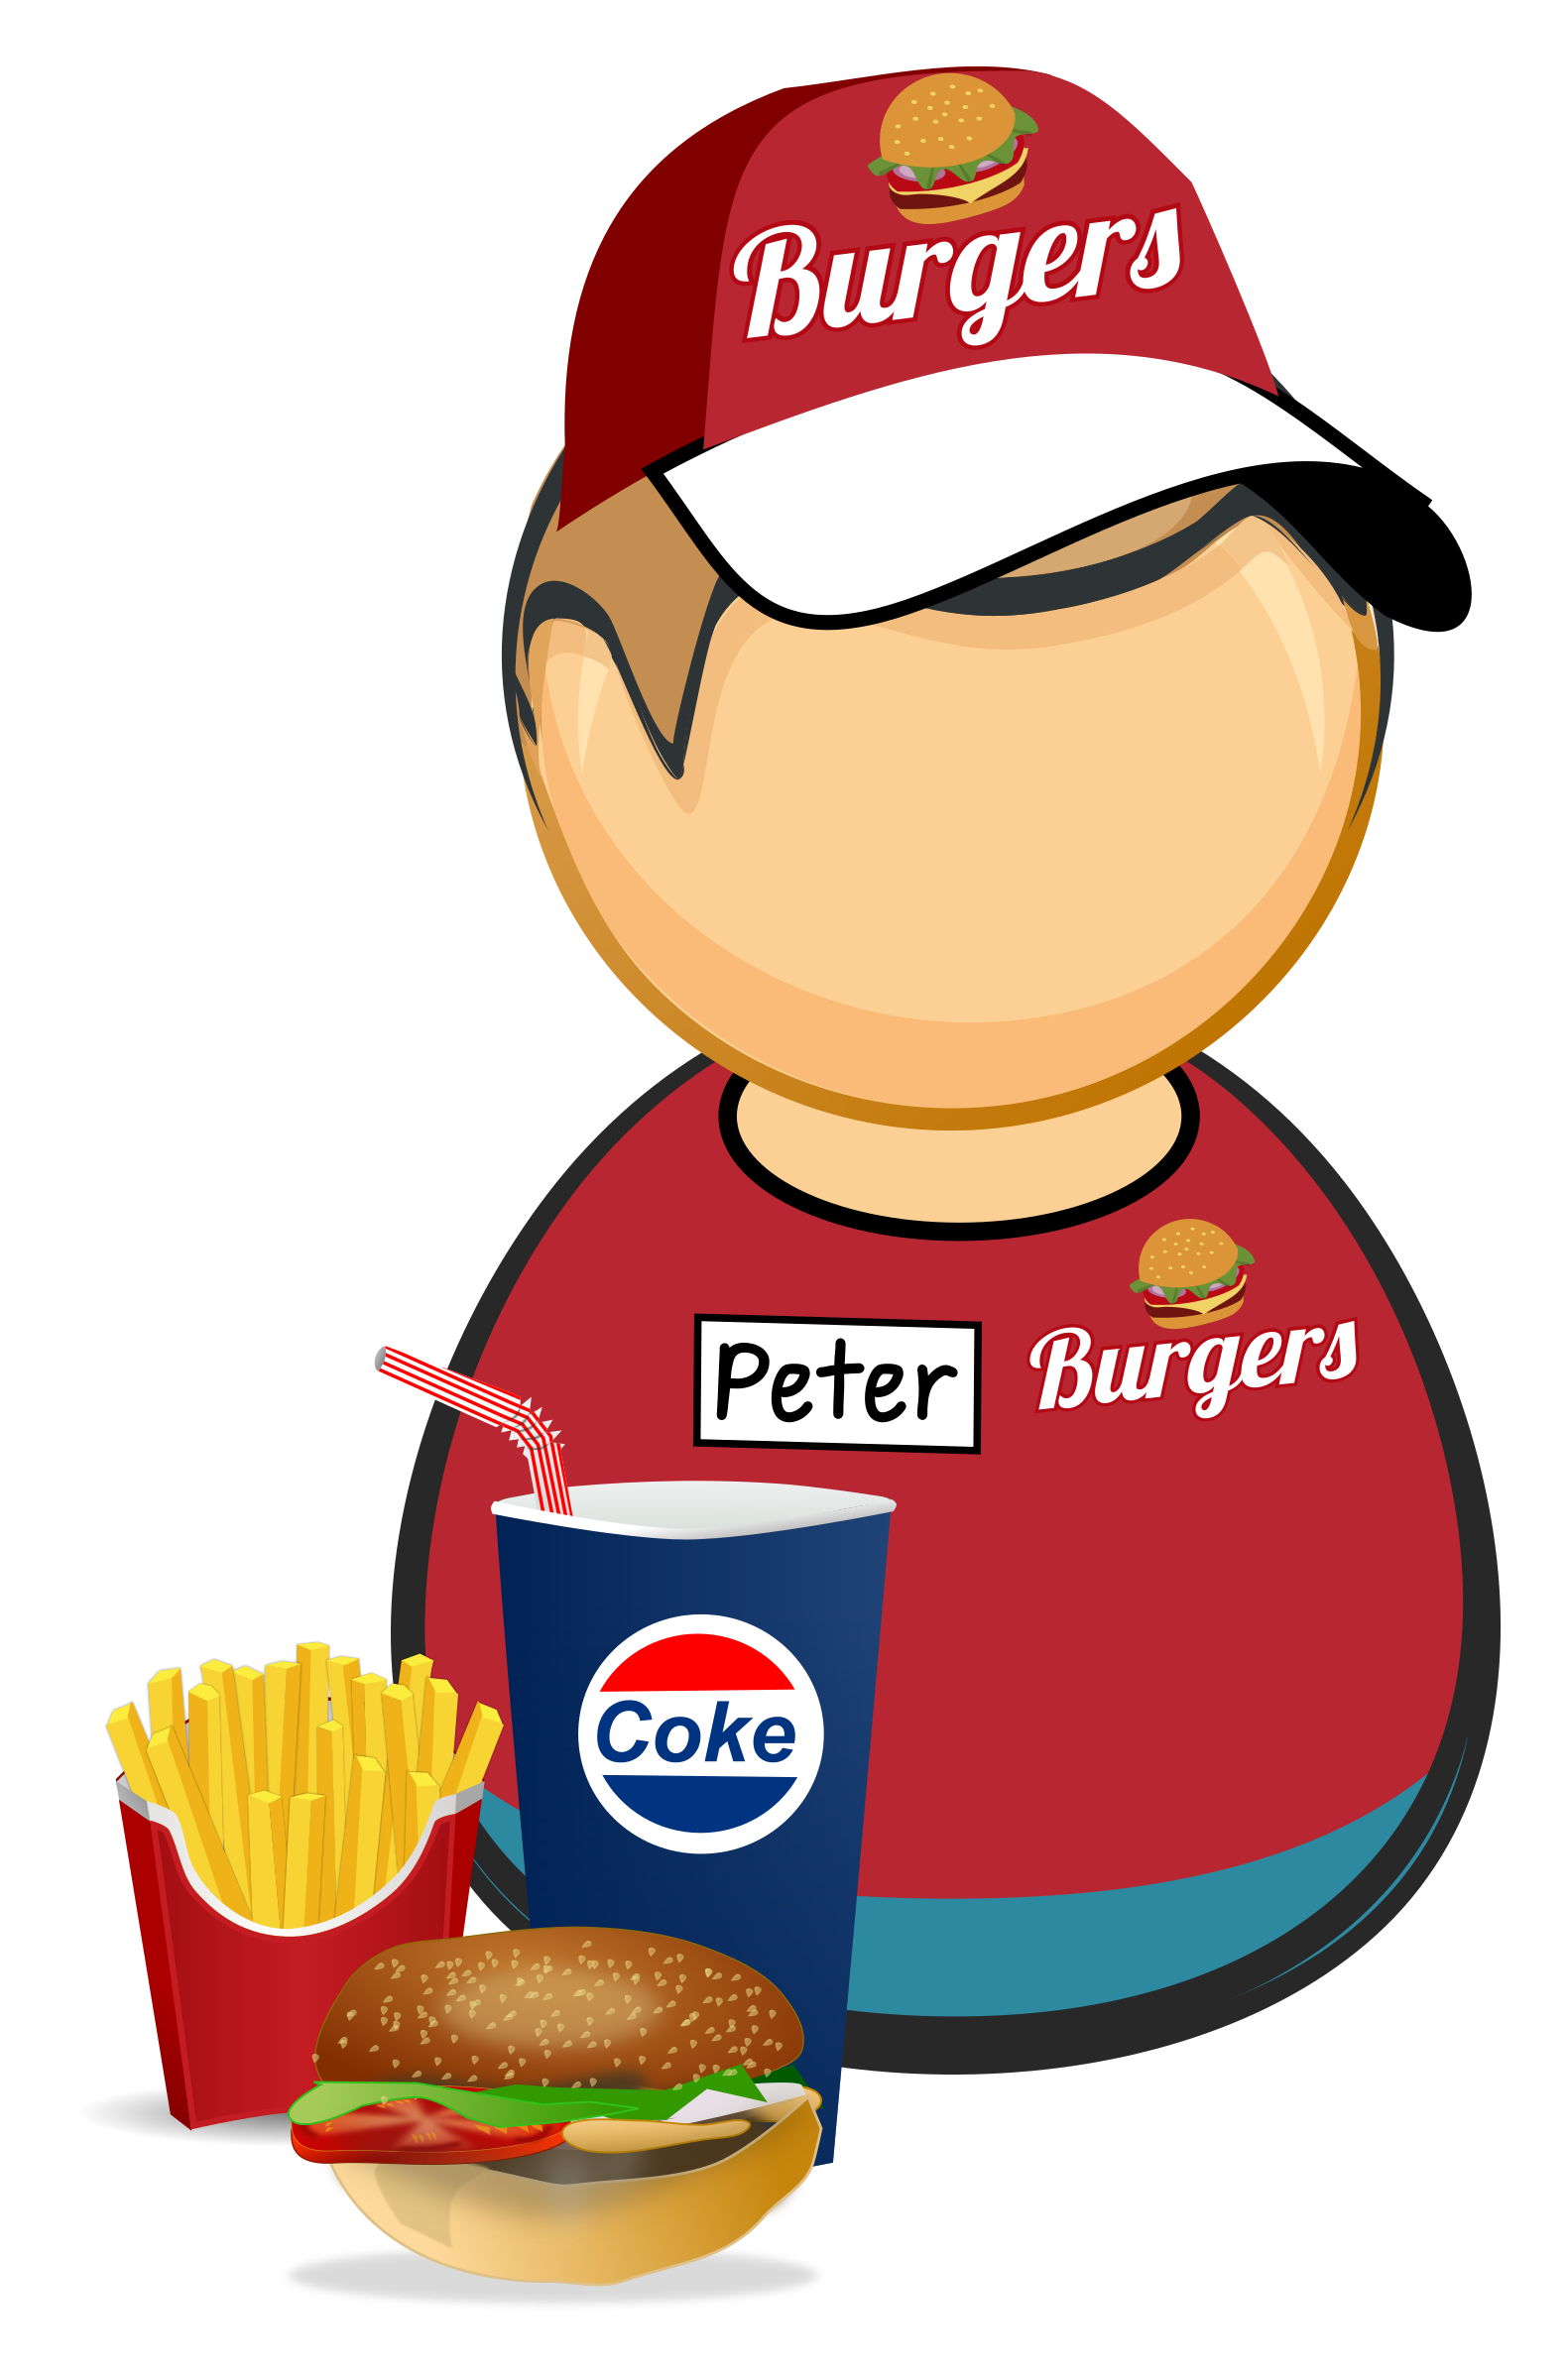 Fastfood worker by Juhele